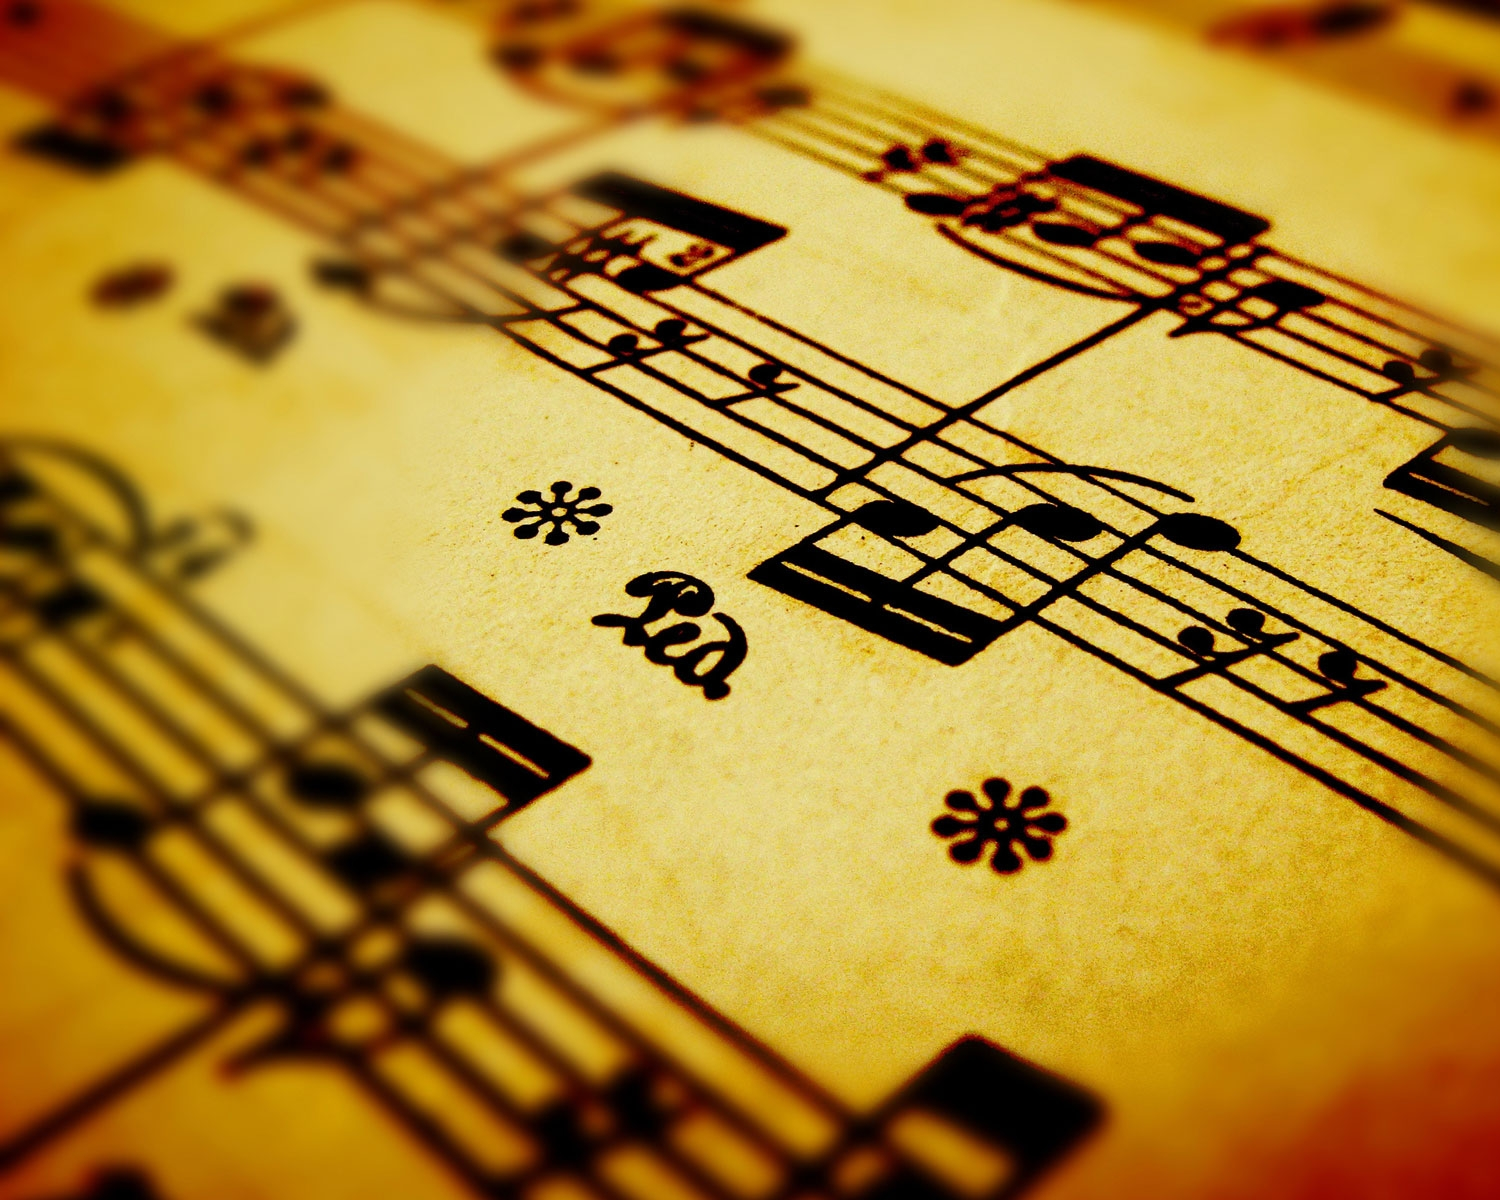 Melody: Basic Theory - Discover core melody concepts such as key, intervals and chords.